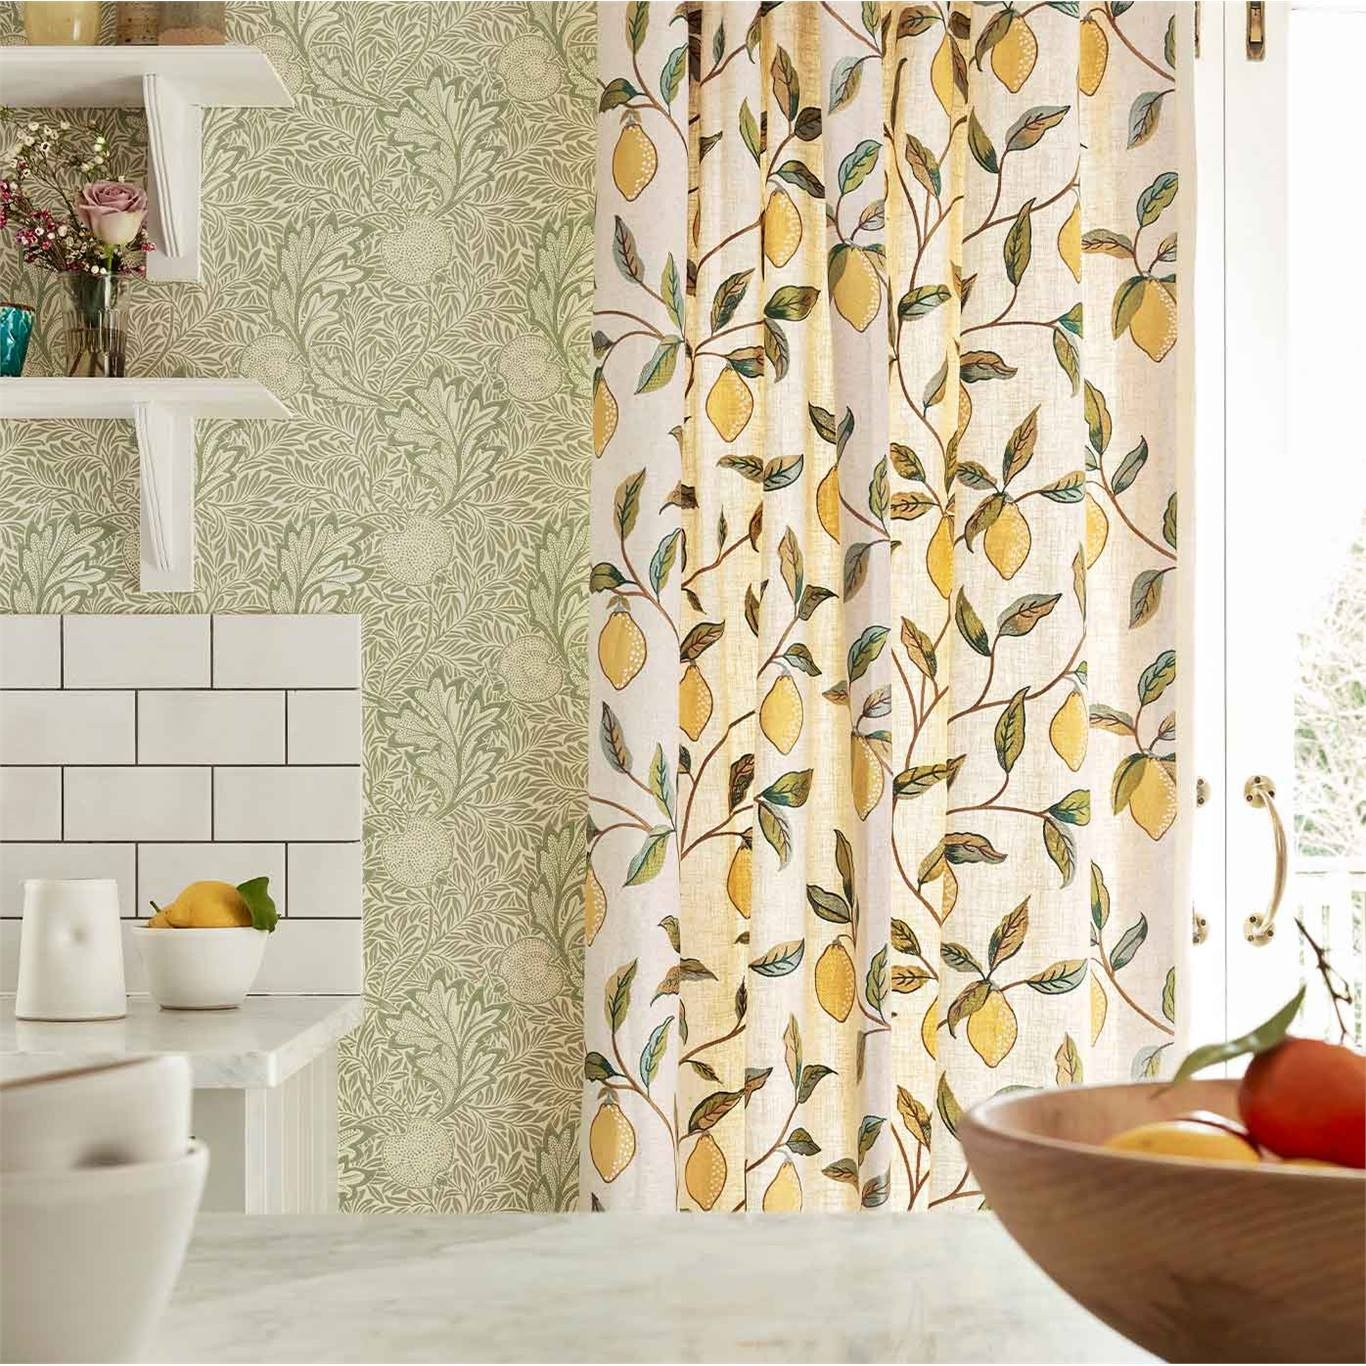 Morris & Co Apple Bay Leaf Wallpaper 216689